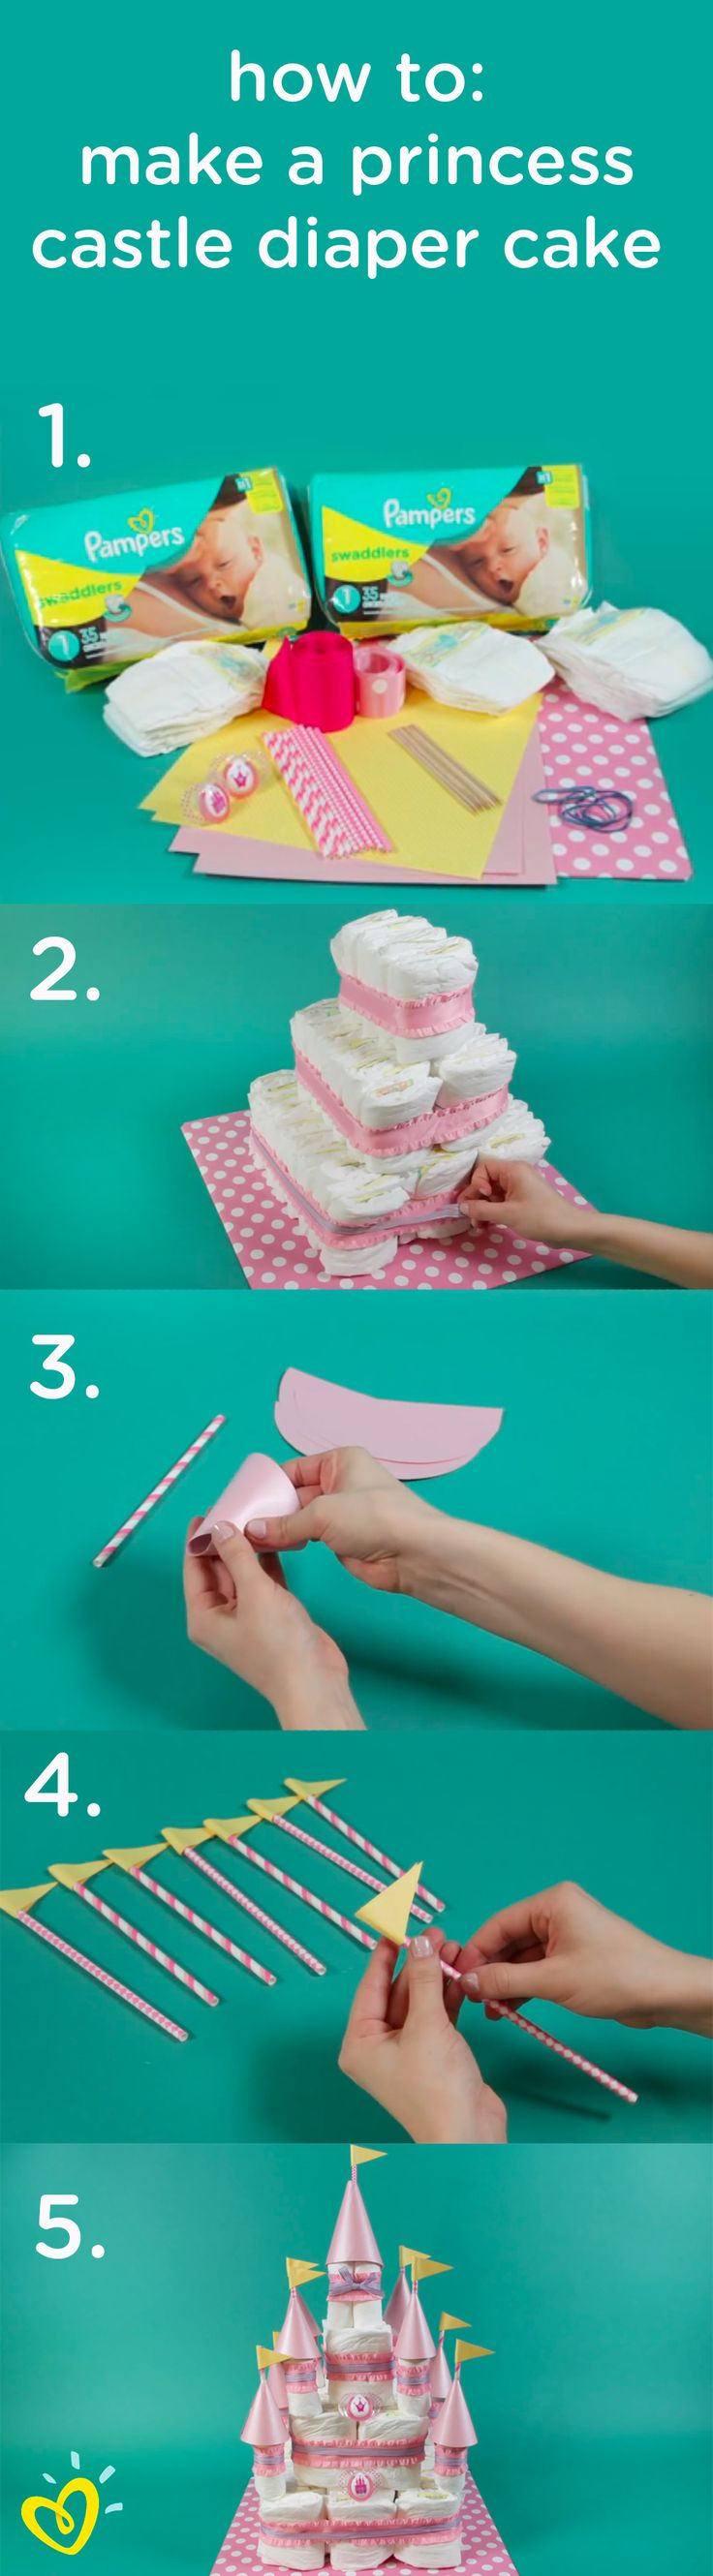 Learn how to create this fun DIY princess diaper cake castle with an easy step-by-step video. This would make a wonderful baby shower gift, decoration, or thoughtful surprise for your close friend and her new bundle of joy.